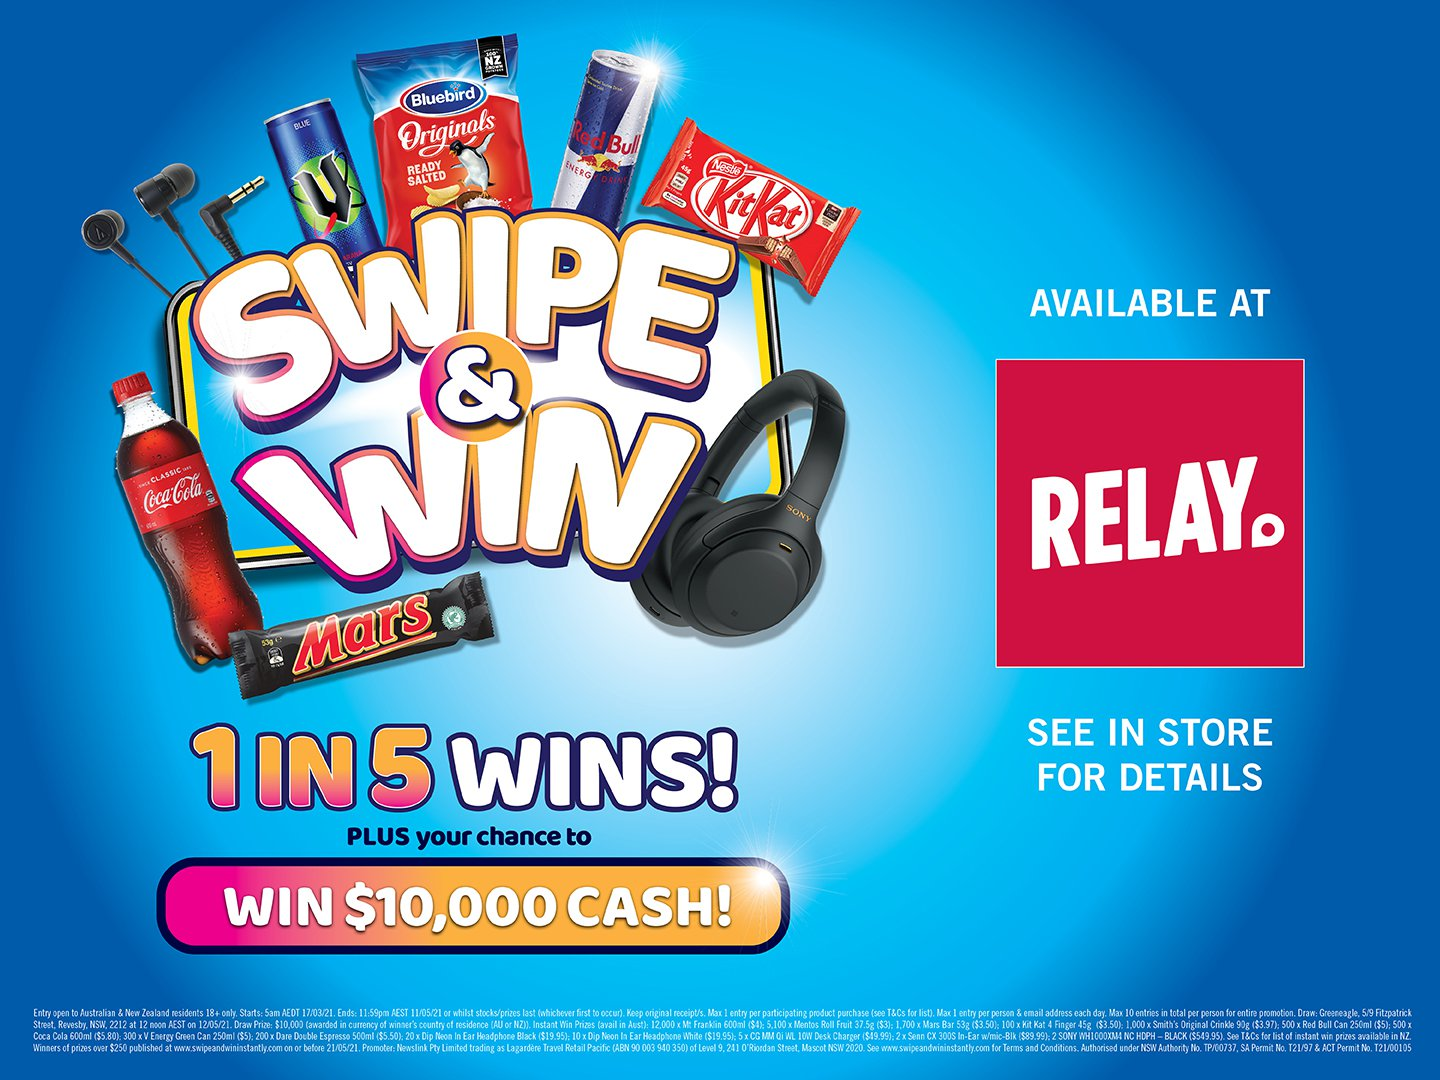 Relay Swipe & Win